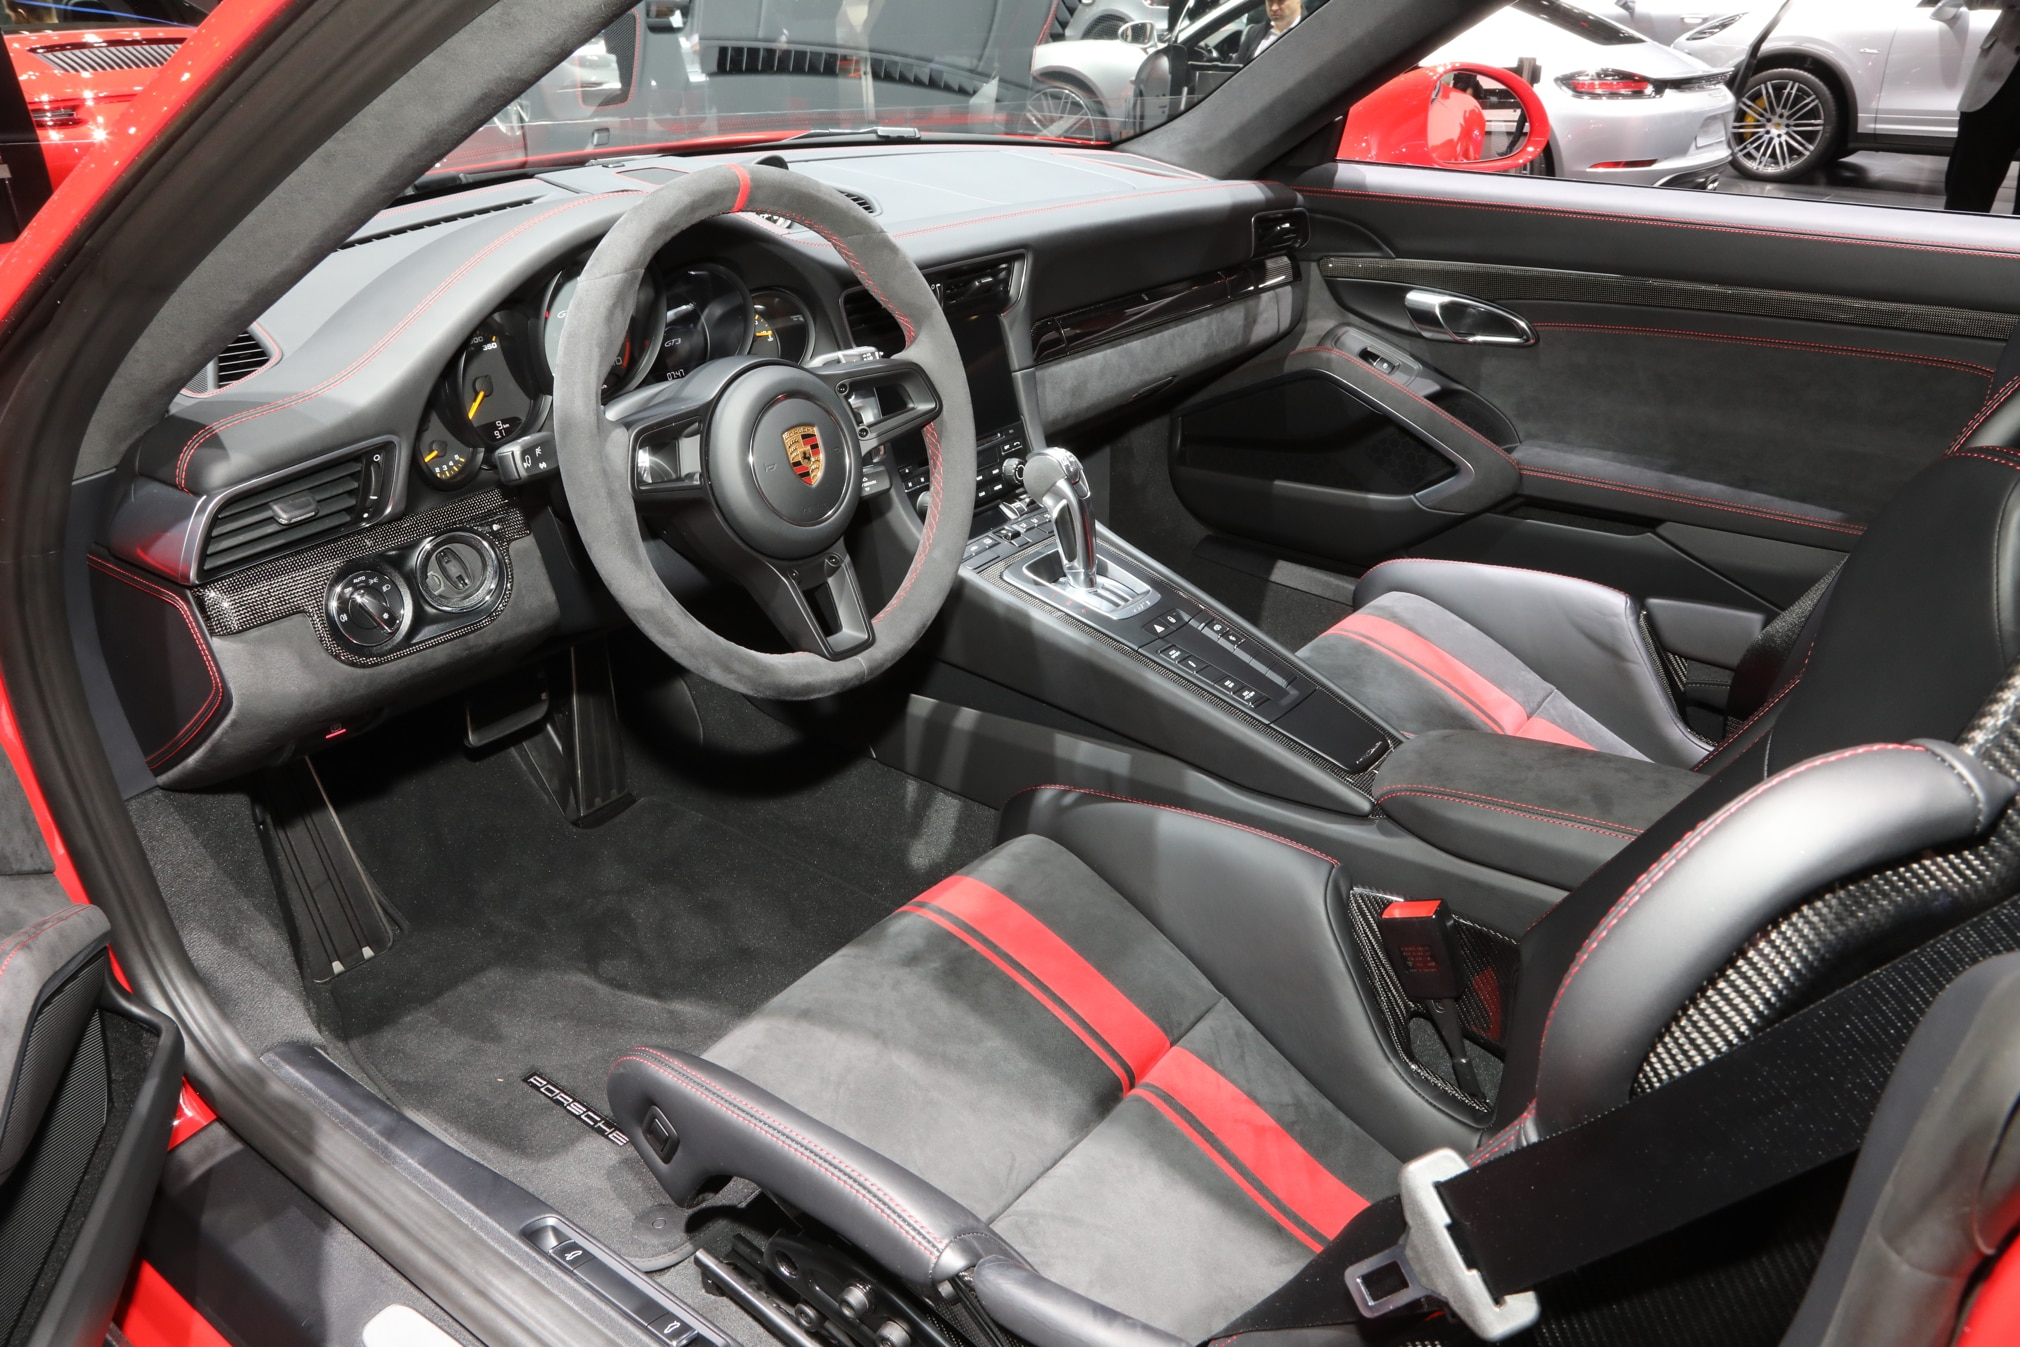 2018-Porsche-911-GT3-interior Interesting Porsche 911 Gt2 and Gt3 Cars Trend